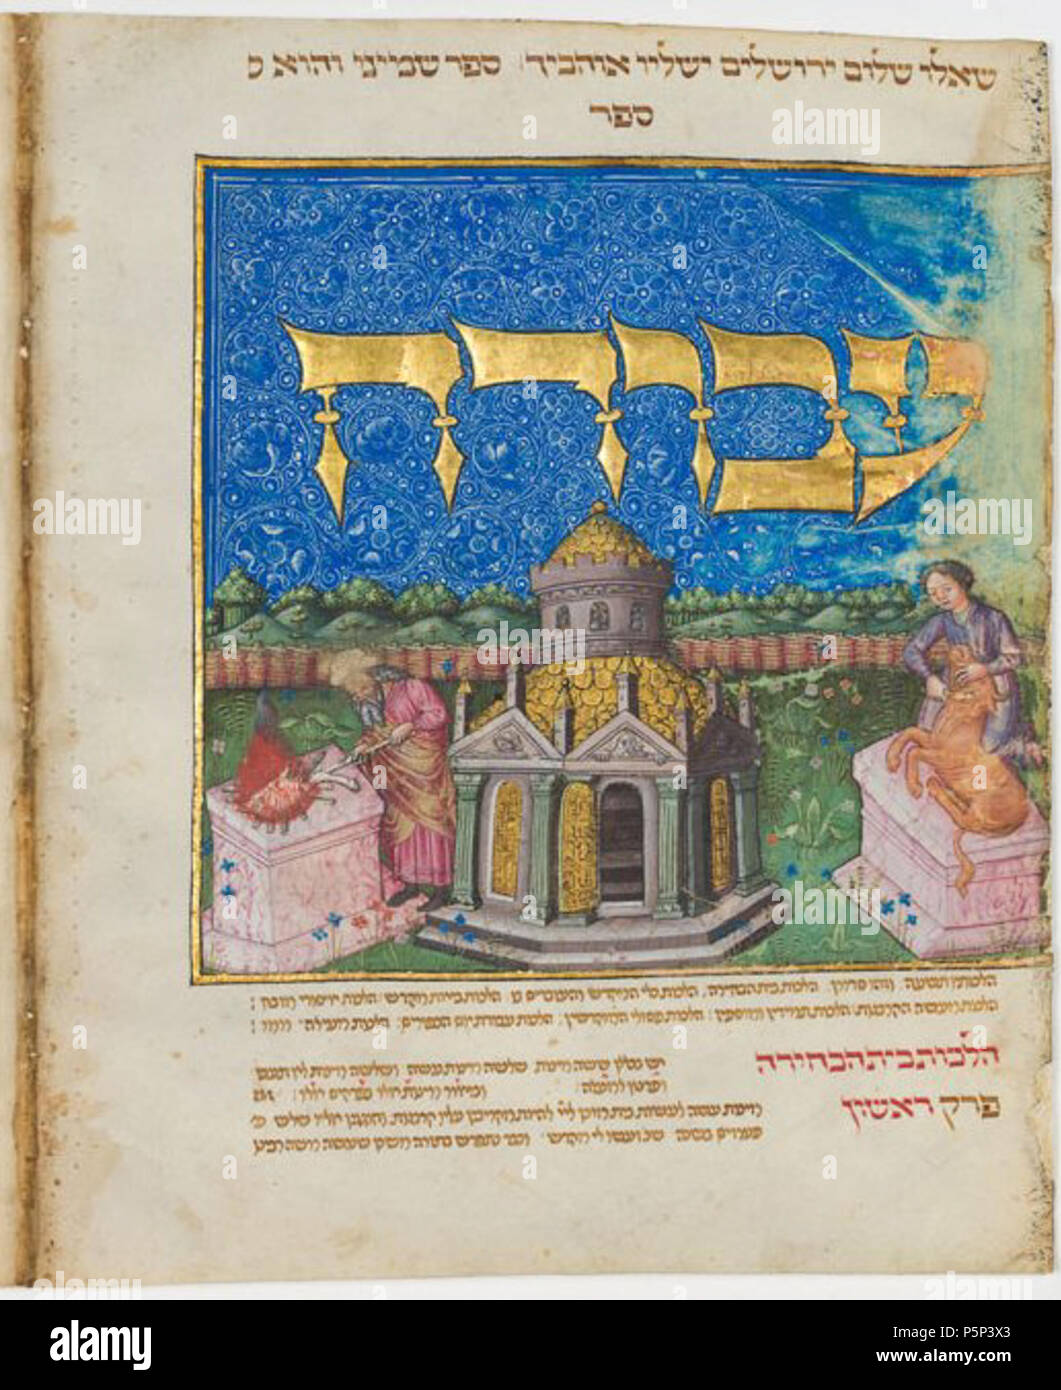 N/A. English: Mishneh Torah, Spain and Northern Italy, 1457-65, fol. 41v.: Opening panel to Sefer Avodah (Book of Works), ill. Service - Temple Worship . between 1457 and 1465. Maimonides 222 Book of Avodah (Service; on Temple Worship). Opening panel, folio 41v.The Israel Museum - Stock Image